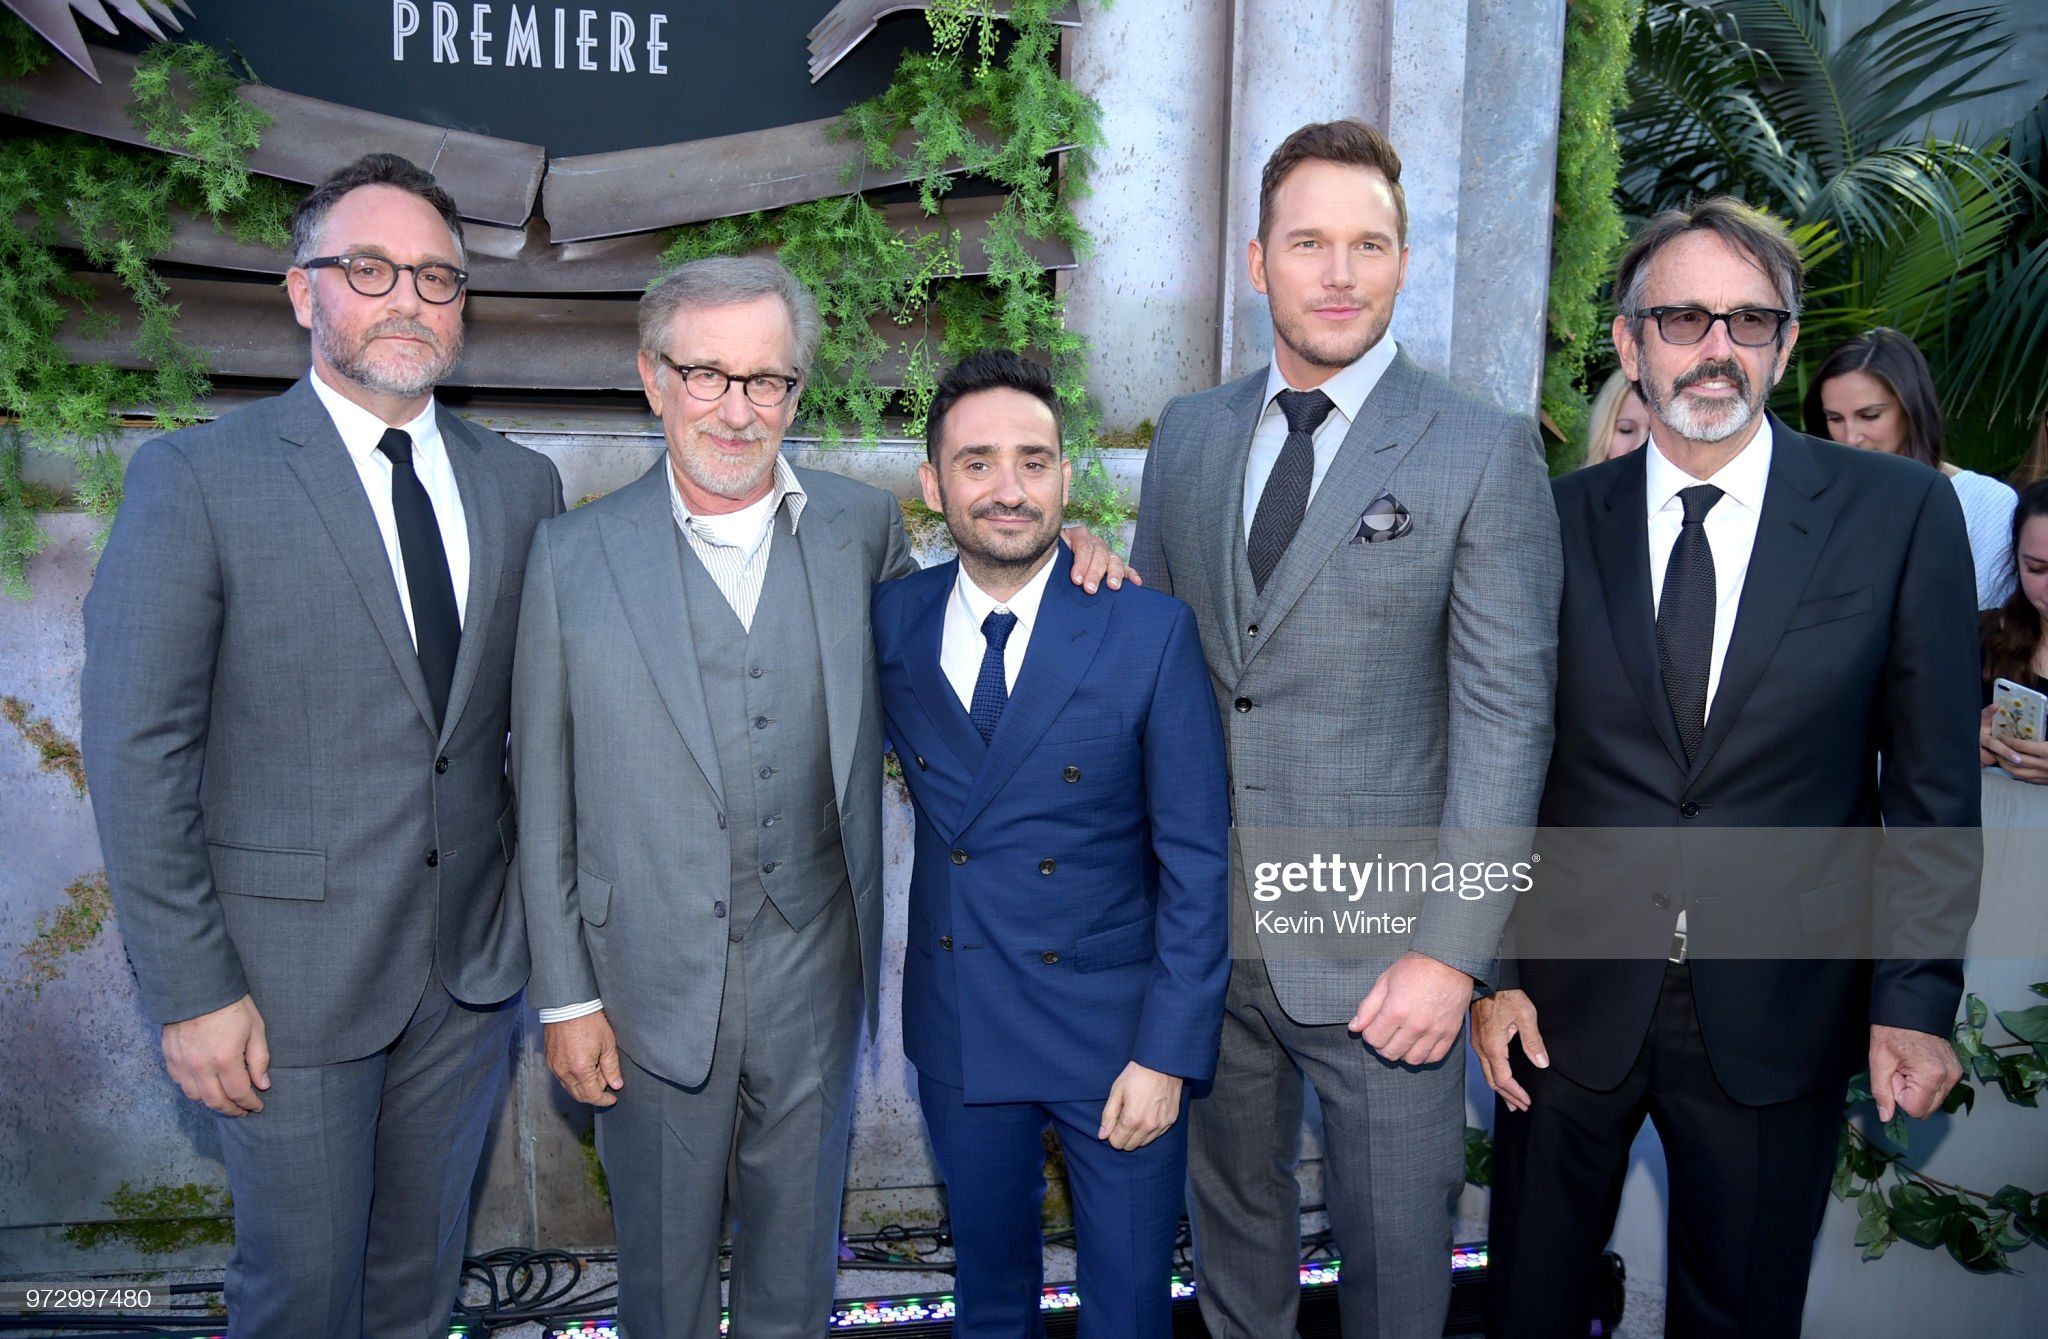 ¿Cuánto mide Steven Spielberg? - Altura - Real height Executive-producer-colin-trevorrow-executive-producer-steven-ja-picture-id972997480?s=2048x2048